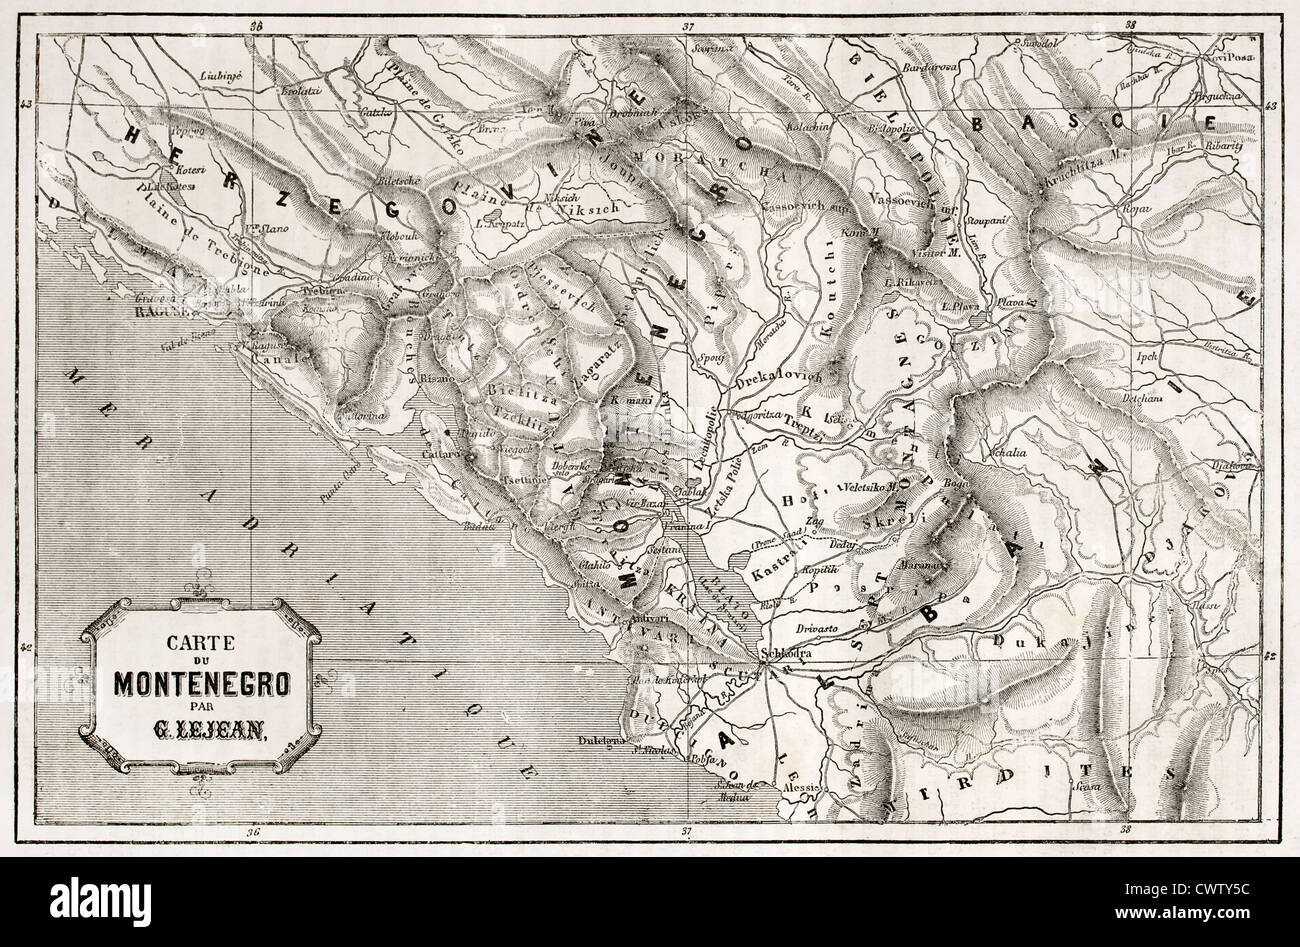 Old map of Montenegro - Stock Image